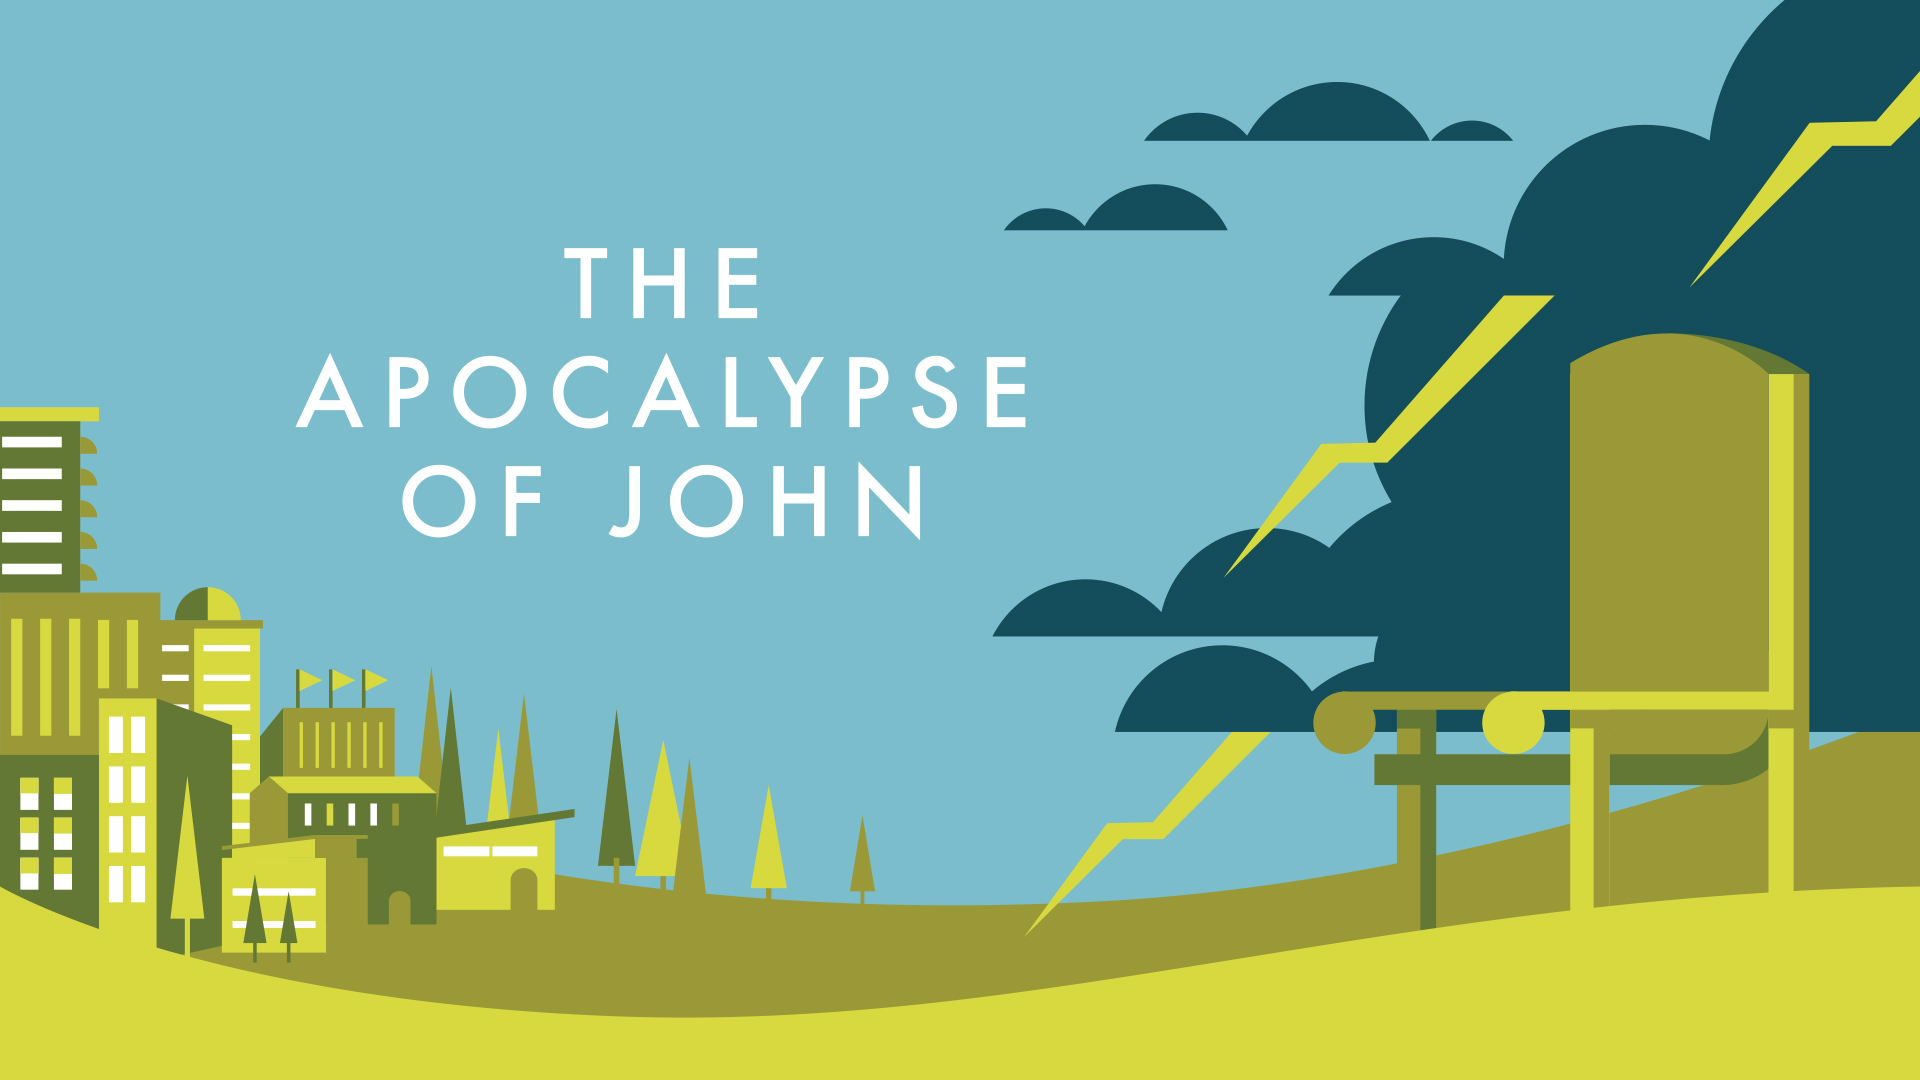 Revelation: The Apocalypse of John